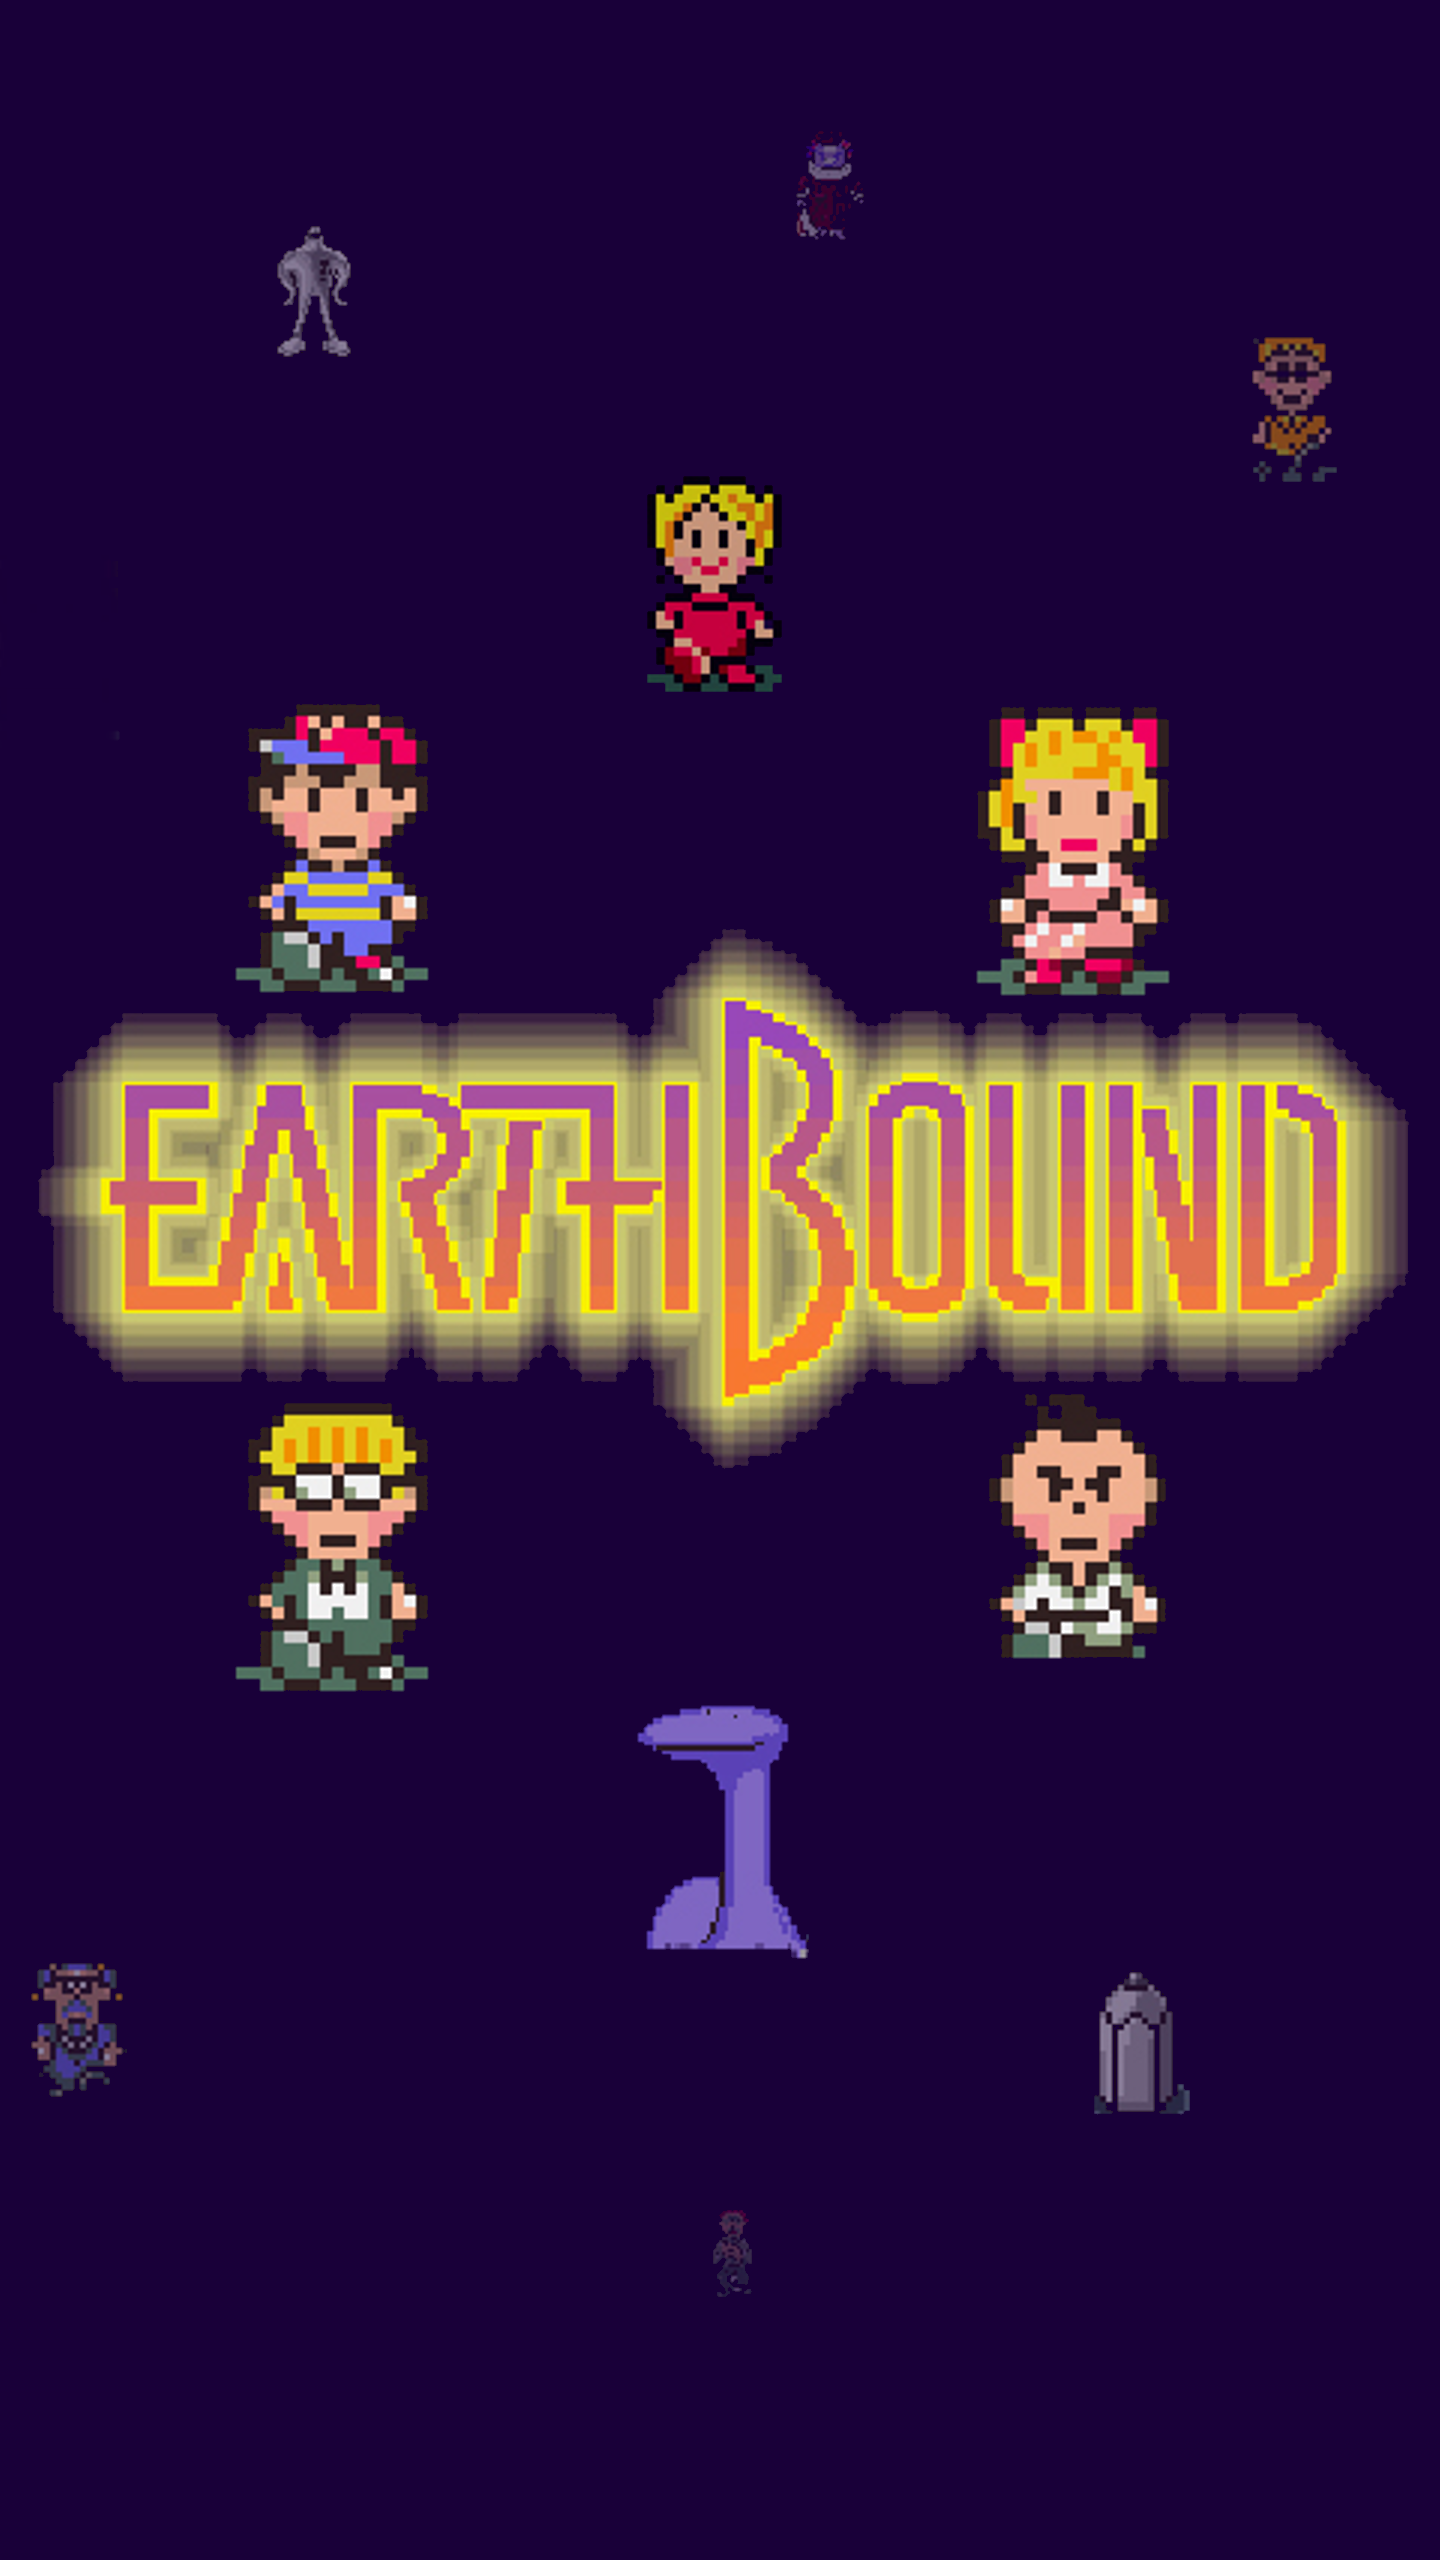 Earthbound Iphone Wallpaper Earthbound Title 1440x2560 Download Hd Wallpaper Wallpapertip